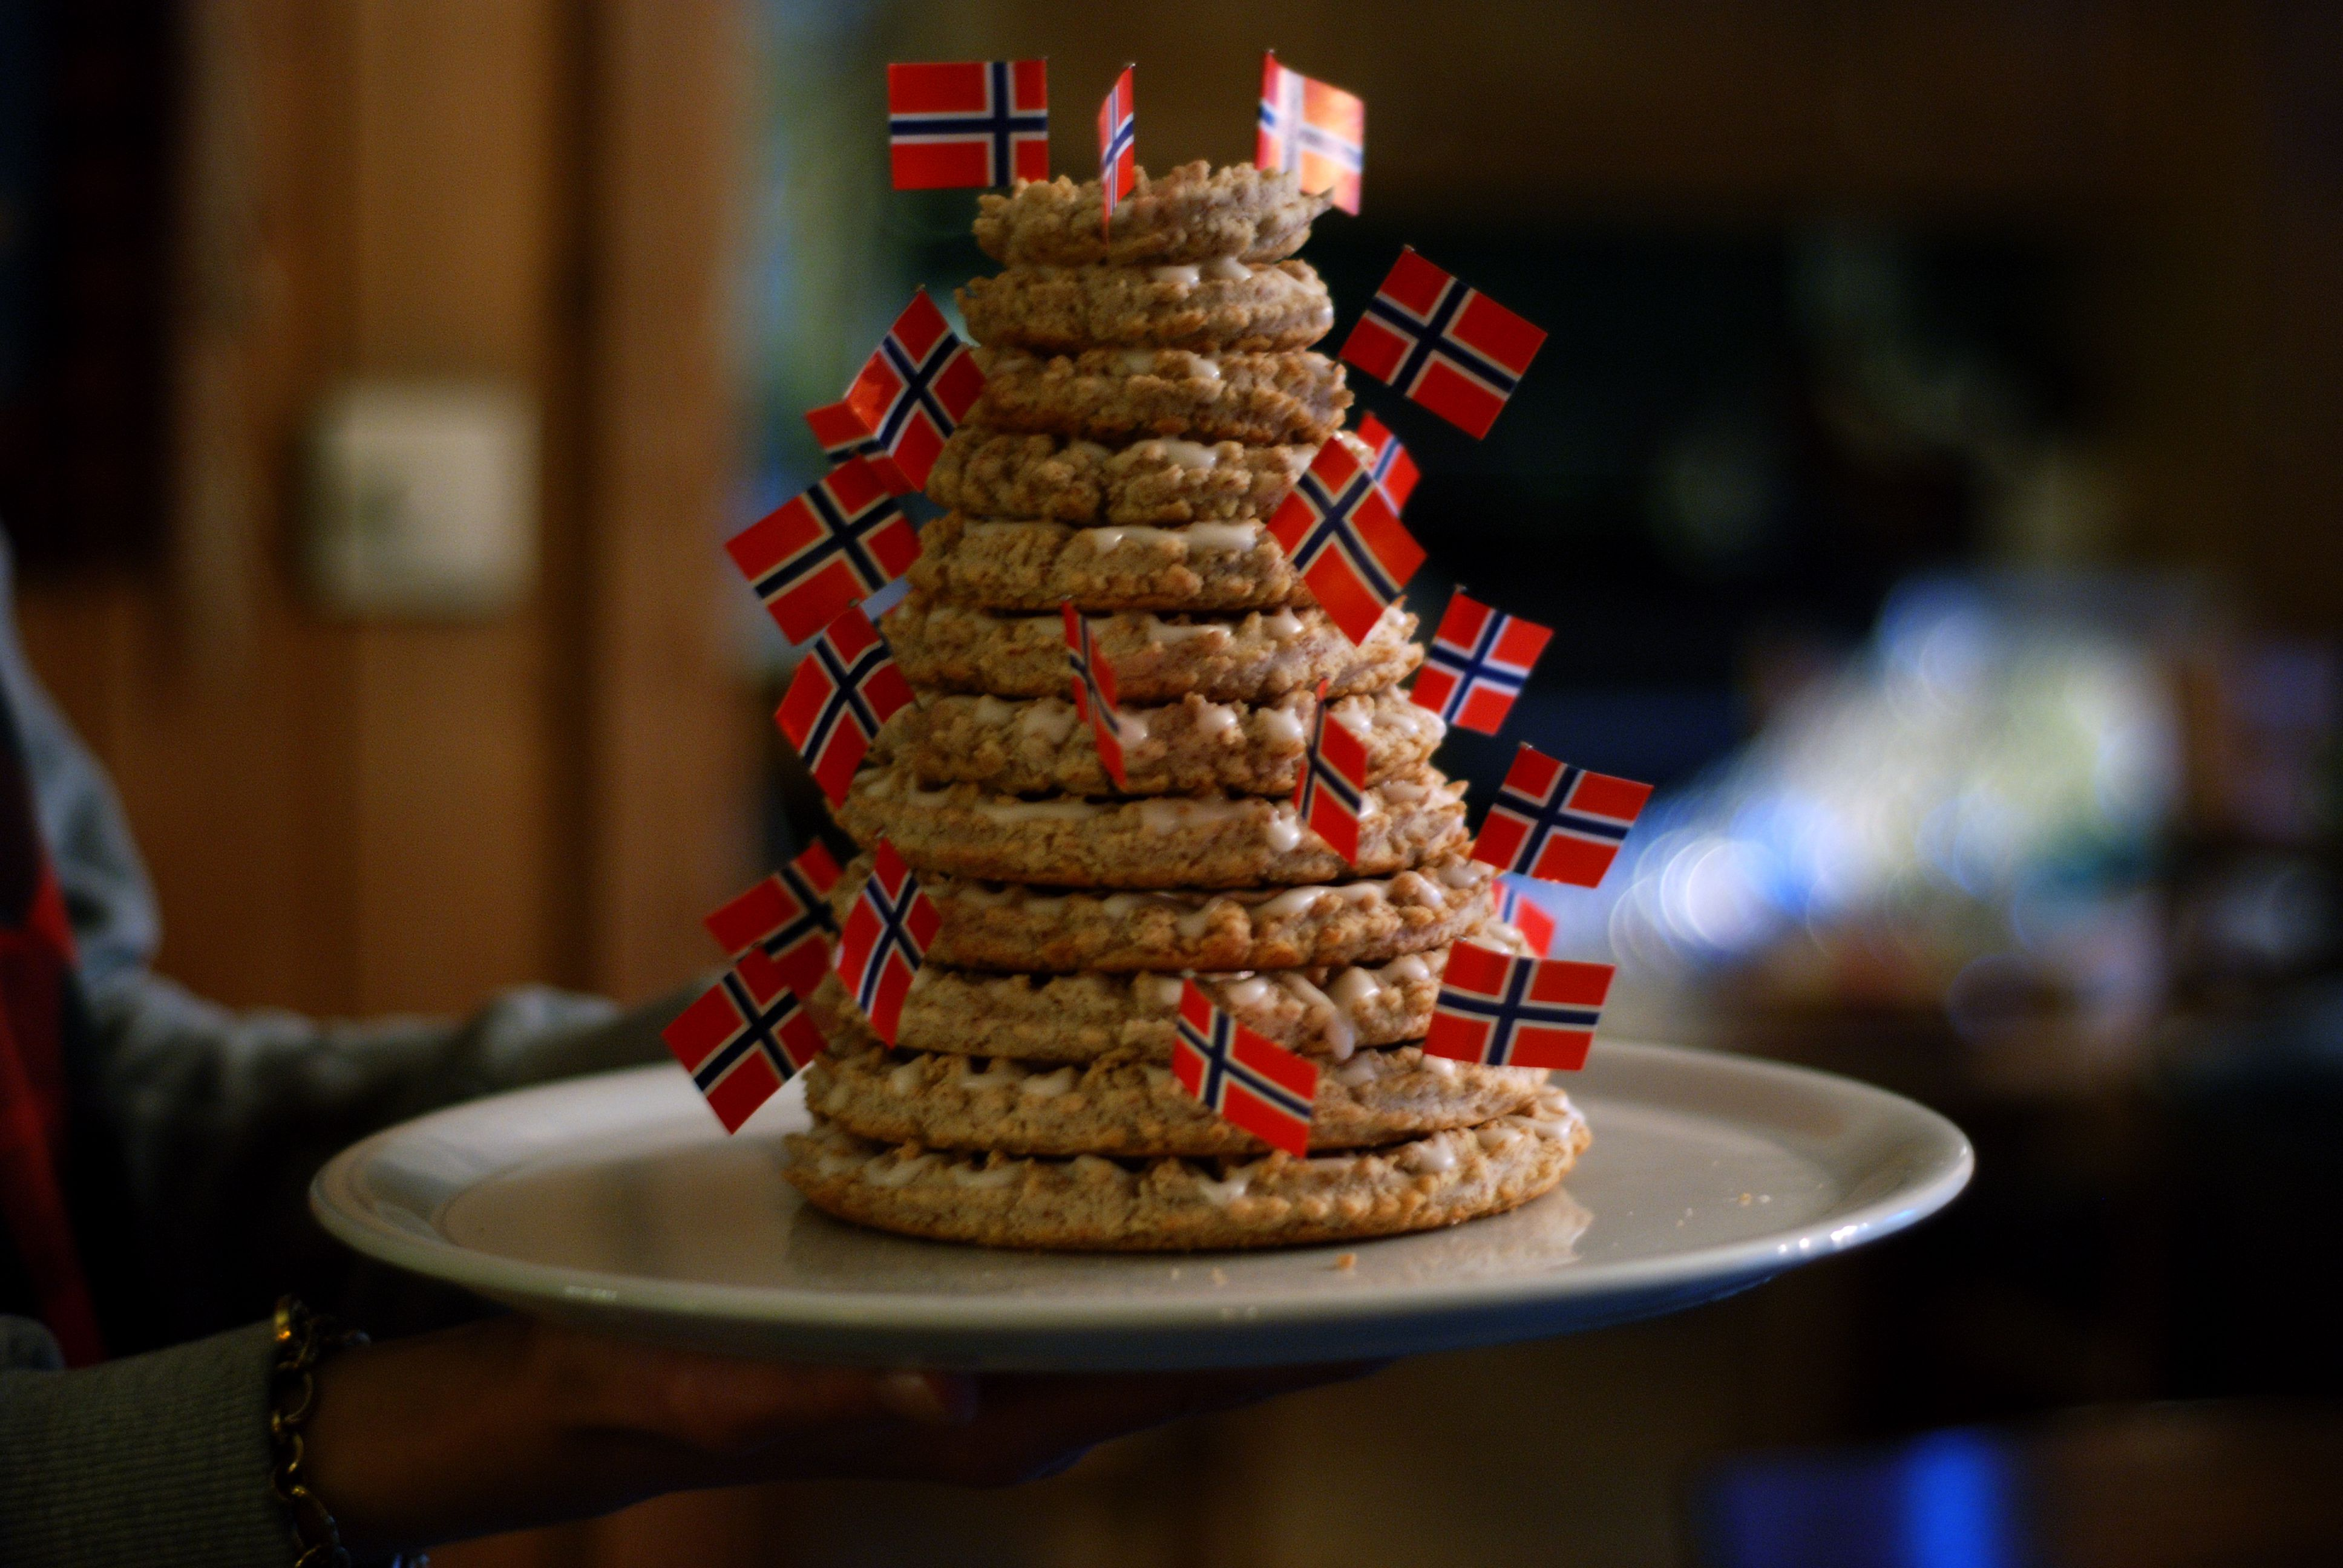 christmas decorating ideas for a small living room wall art decor norwegian kransekake, almond ring cake recipe